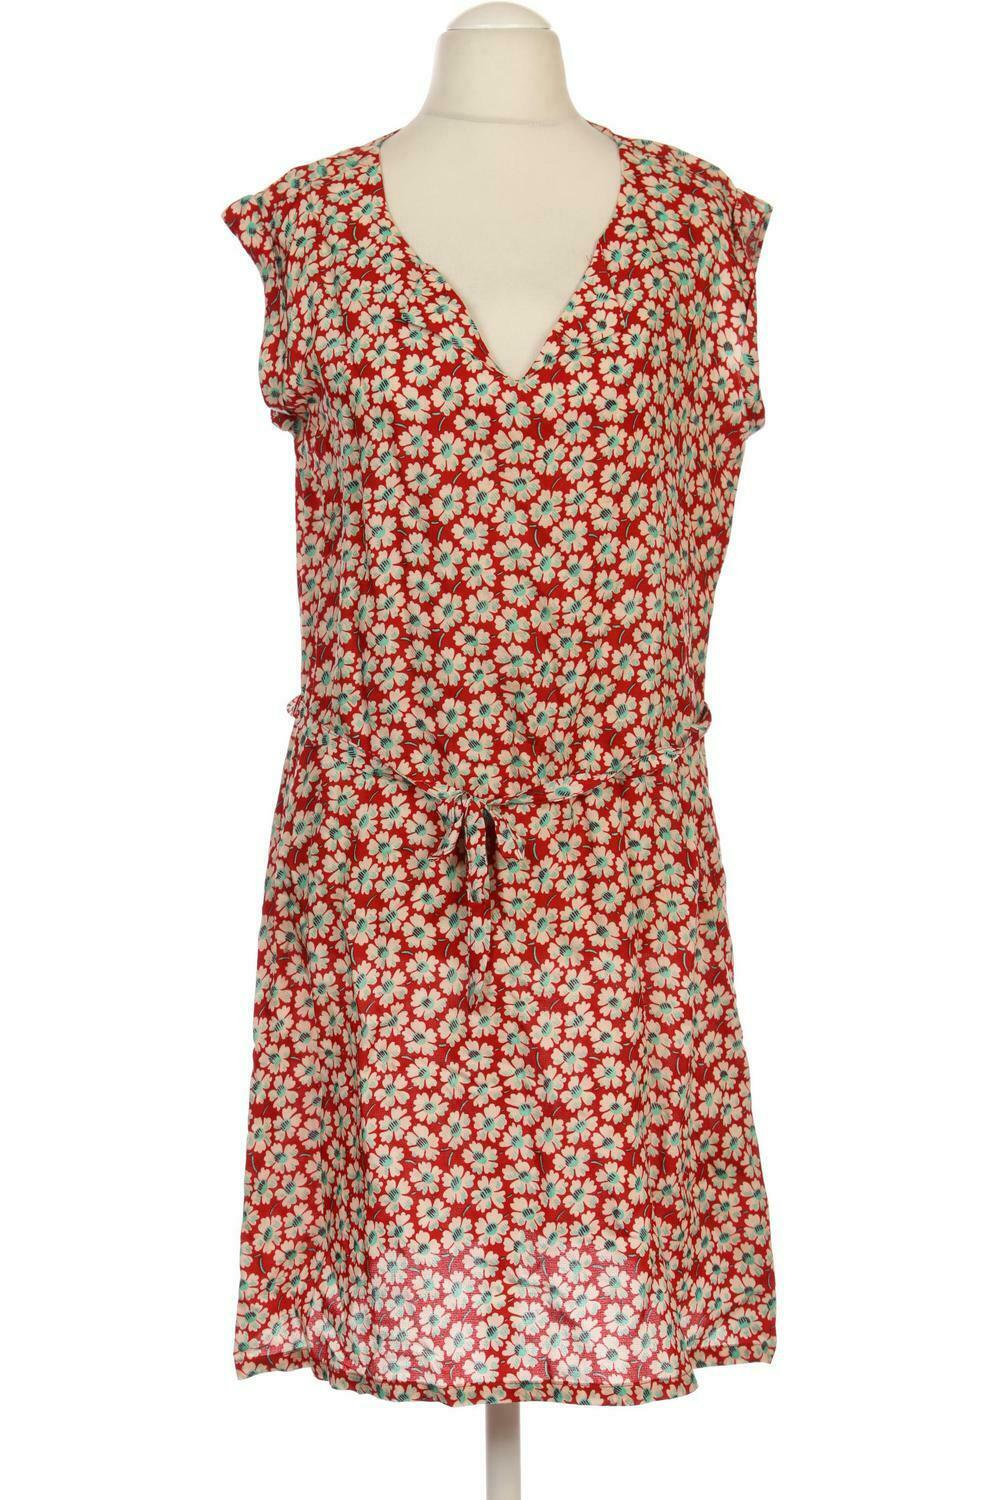 KING LOUIE Kleid Damen Dress Damenkleid Gr. DE 42 Viskose rot  86ee094